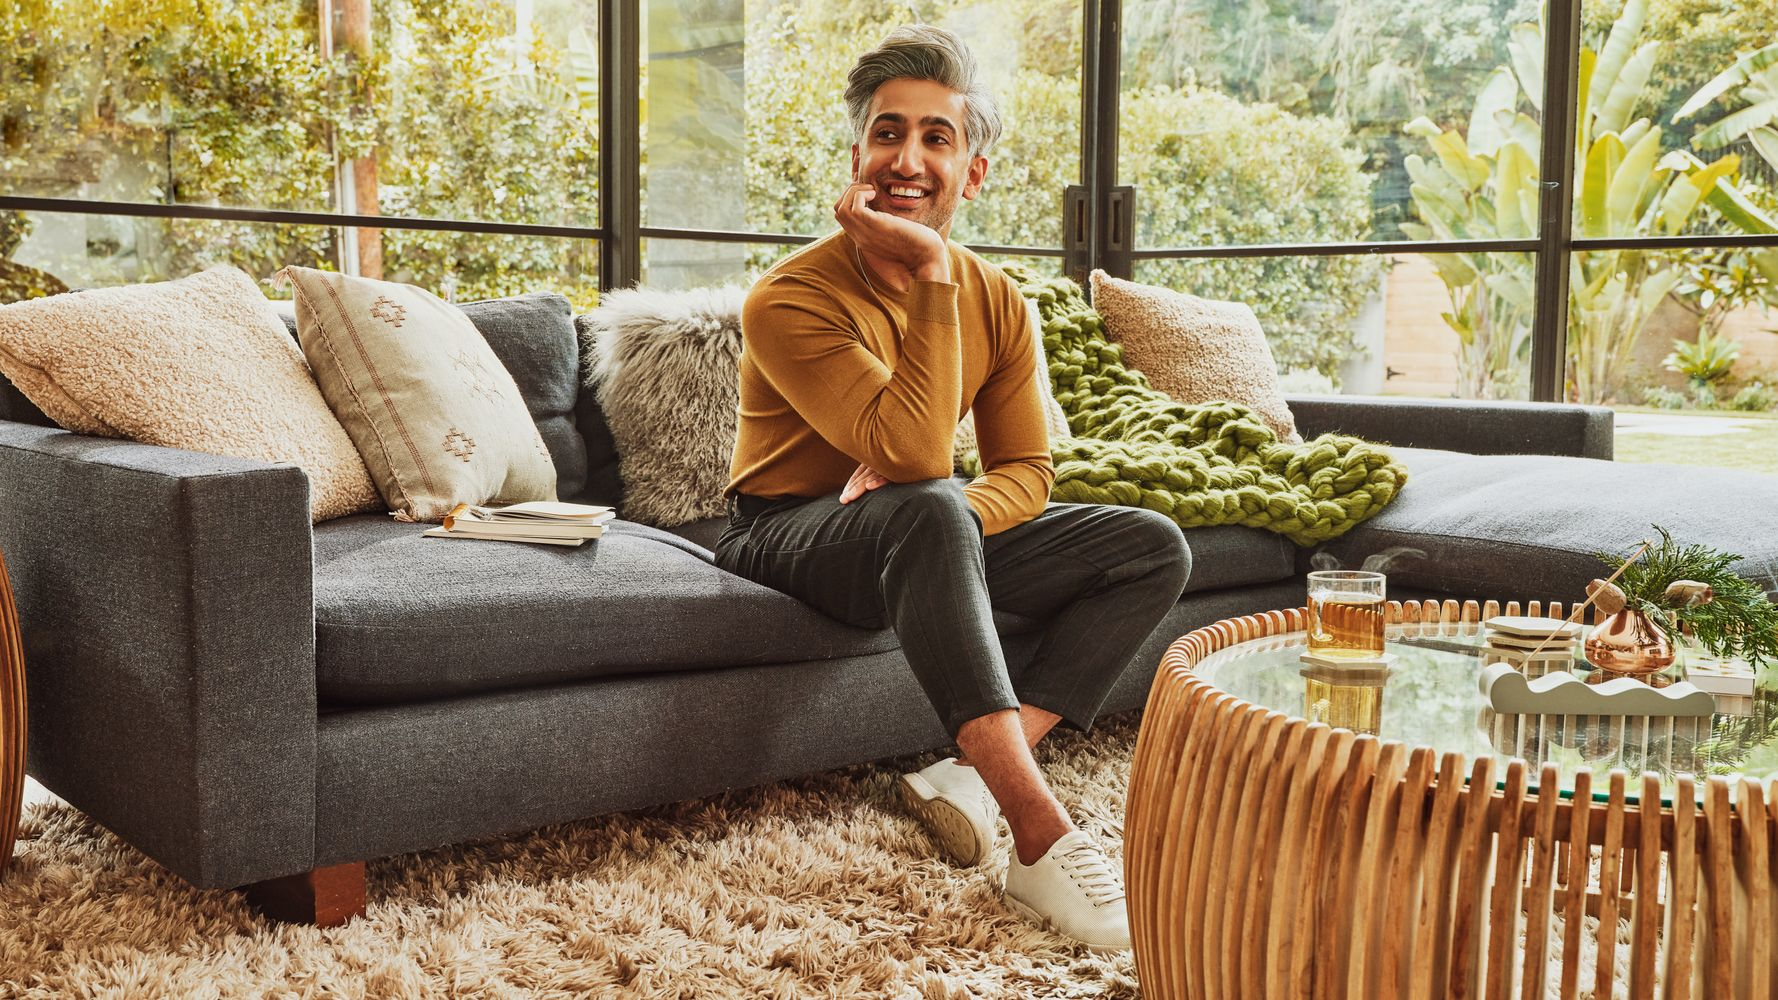 Tan France: Here's How To Cosy Up Your Home For Autumn Days